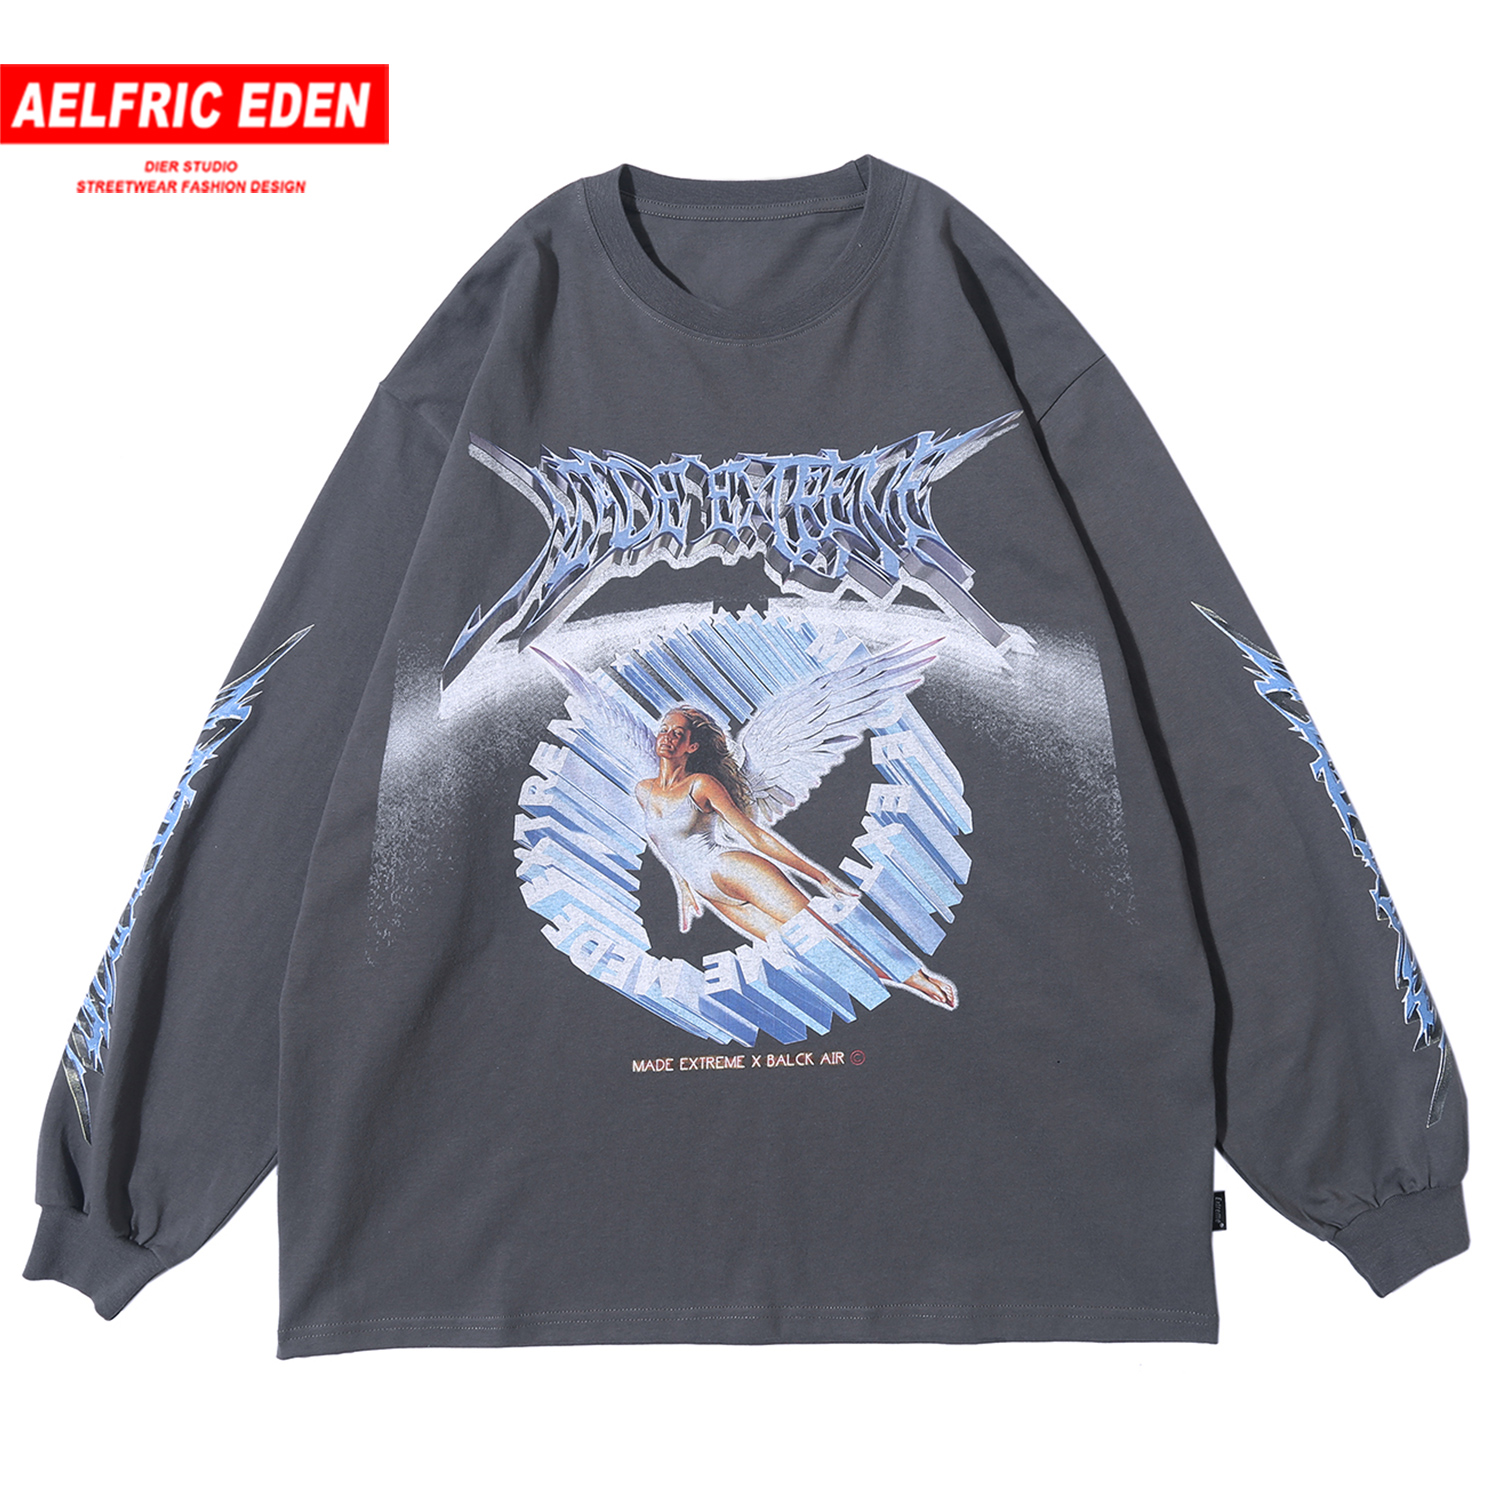 Aelfric Eden Vintage Angel Letter Sweatshirt Mens Streetwear 2020 Casual Cotton Pullover Harajuku Hip Hop Shirt Long Sleeve